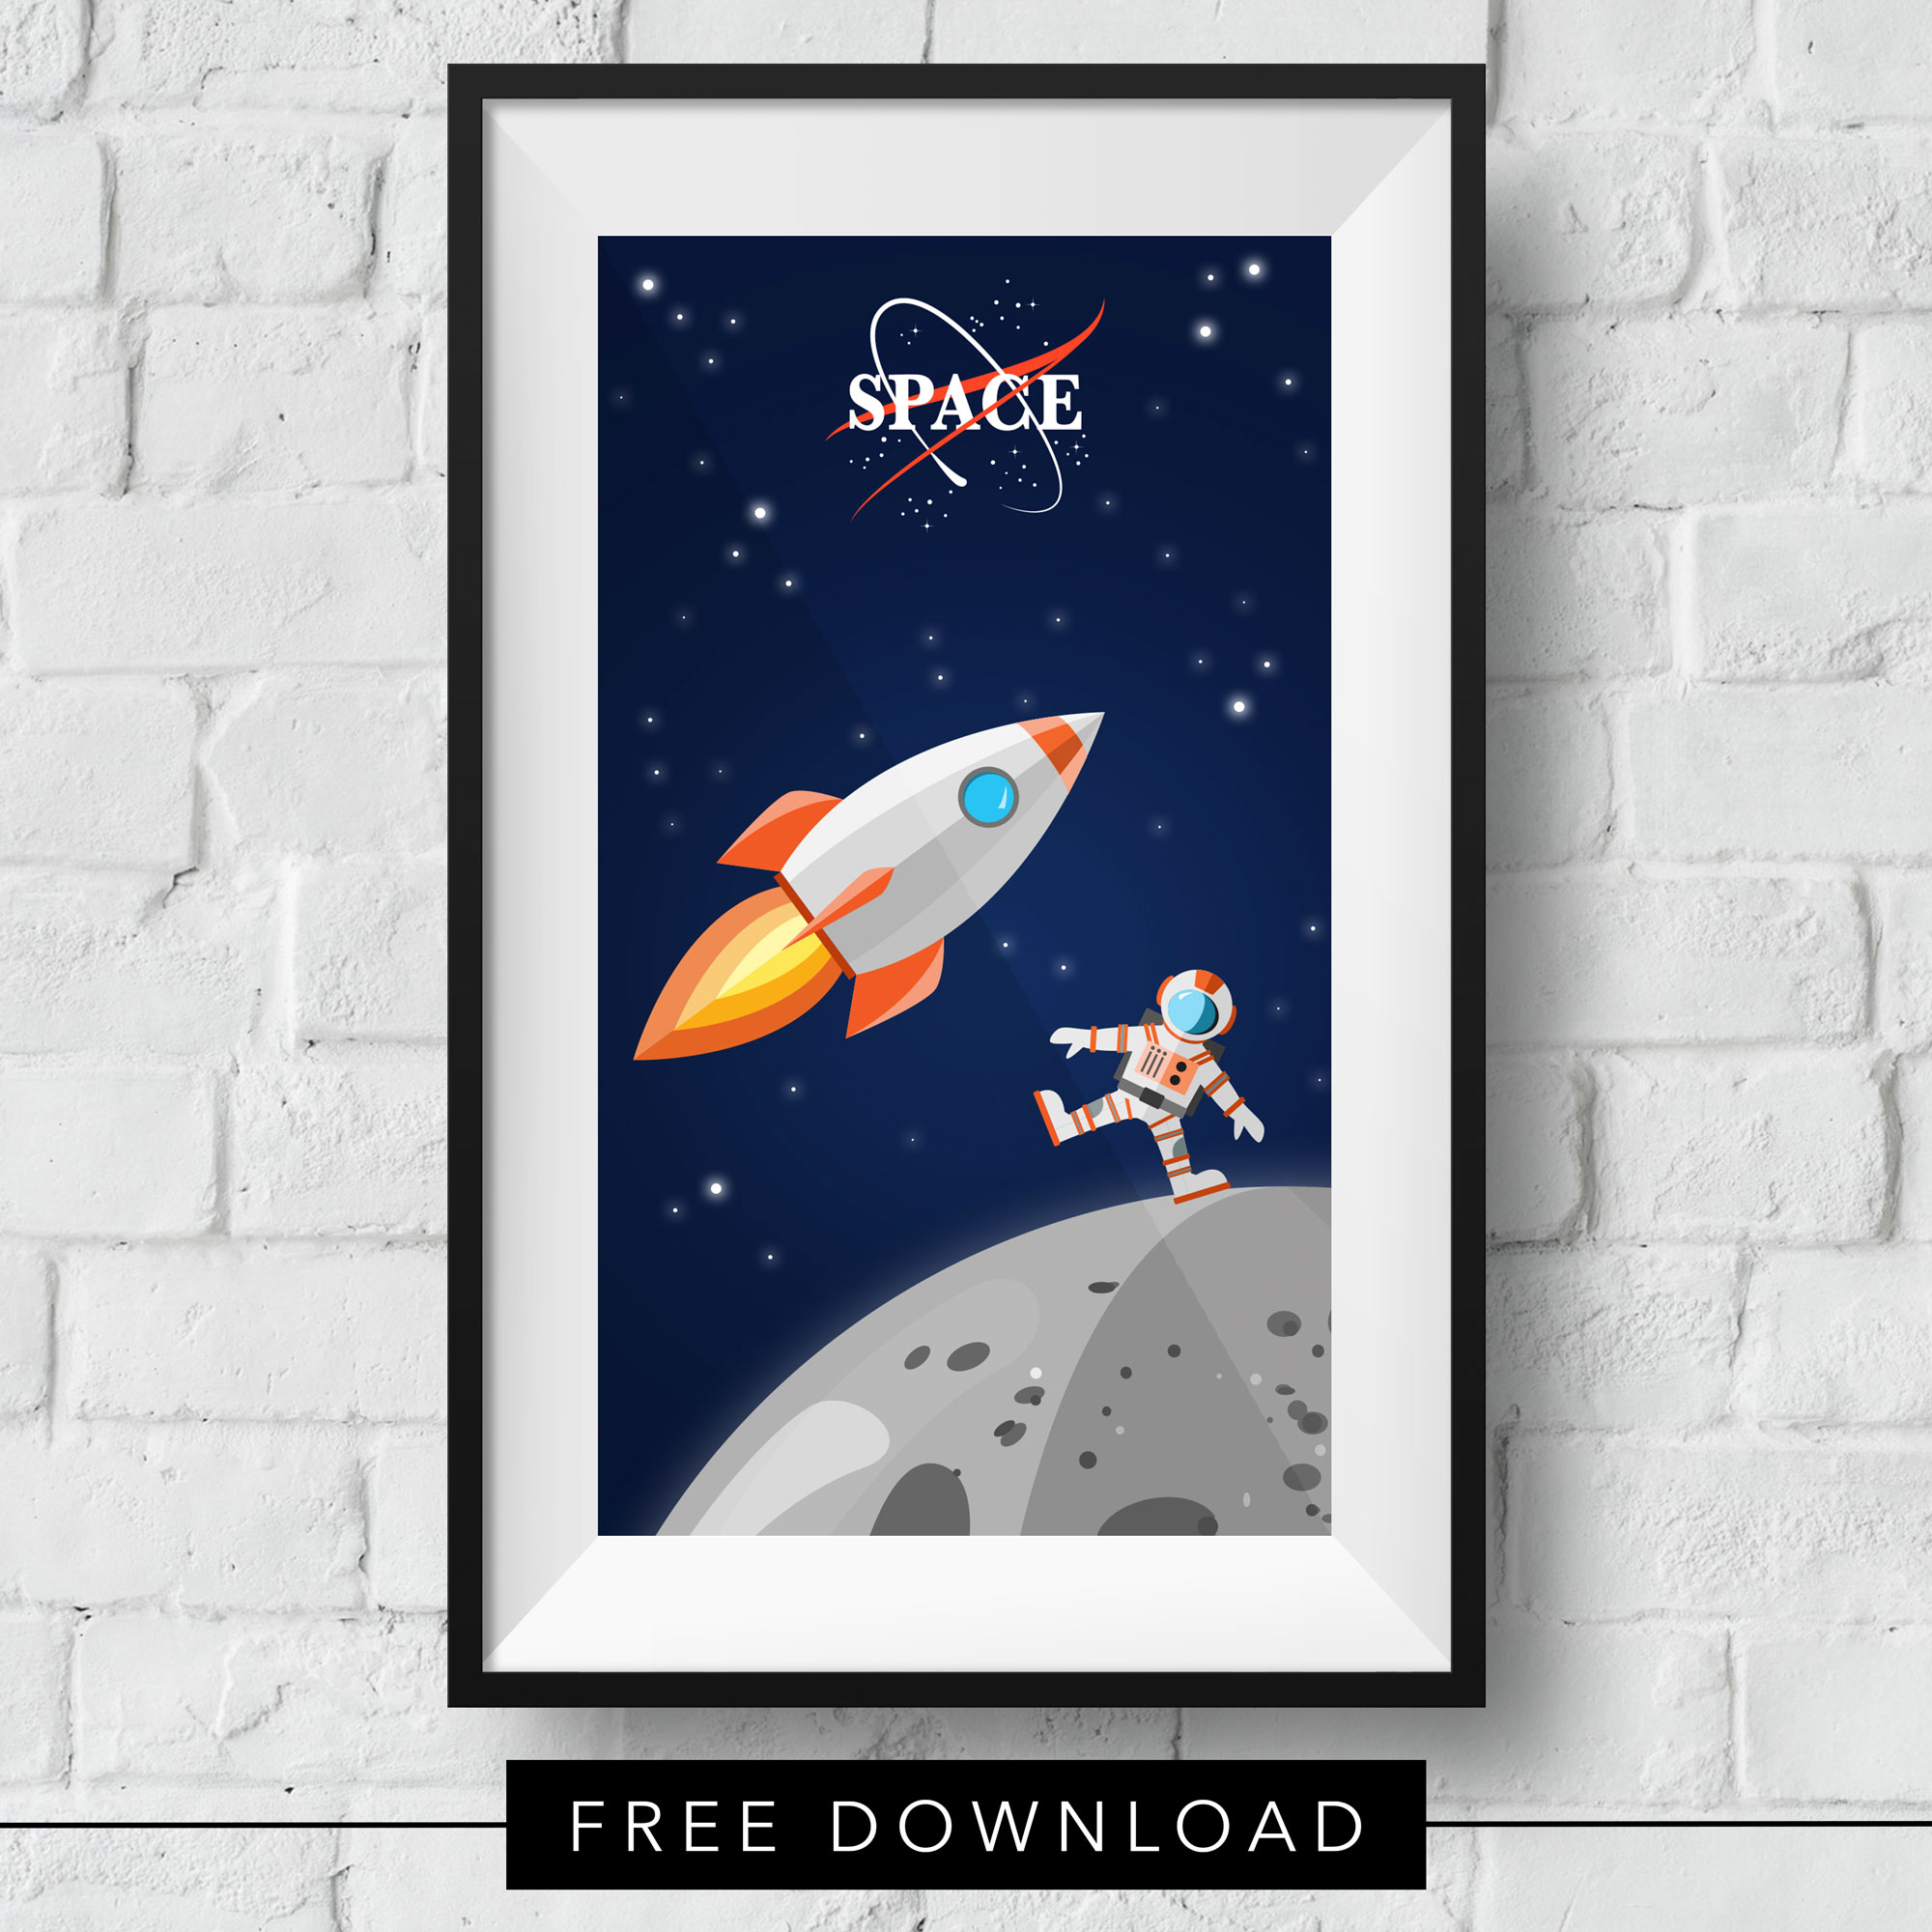 space-free-download